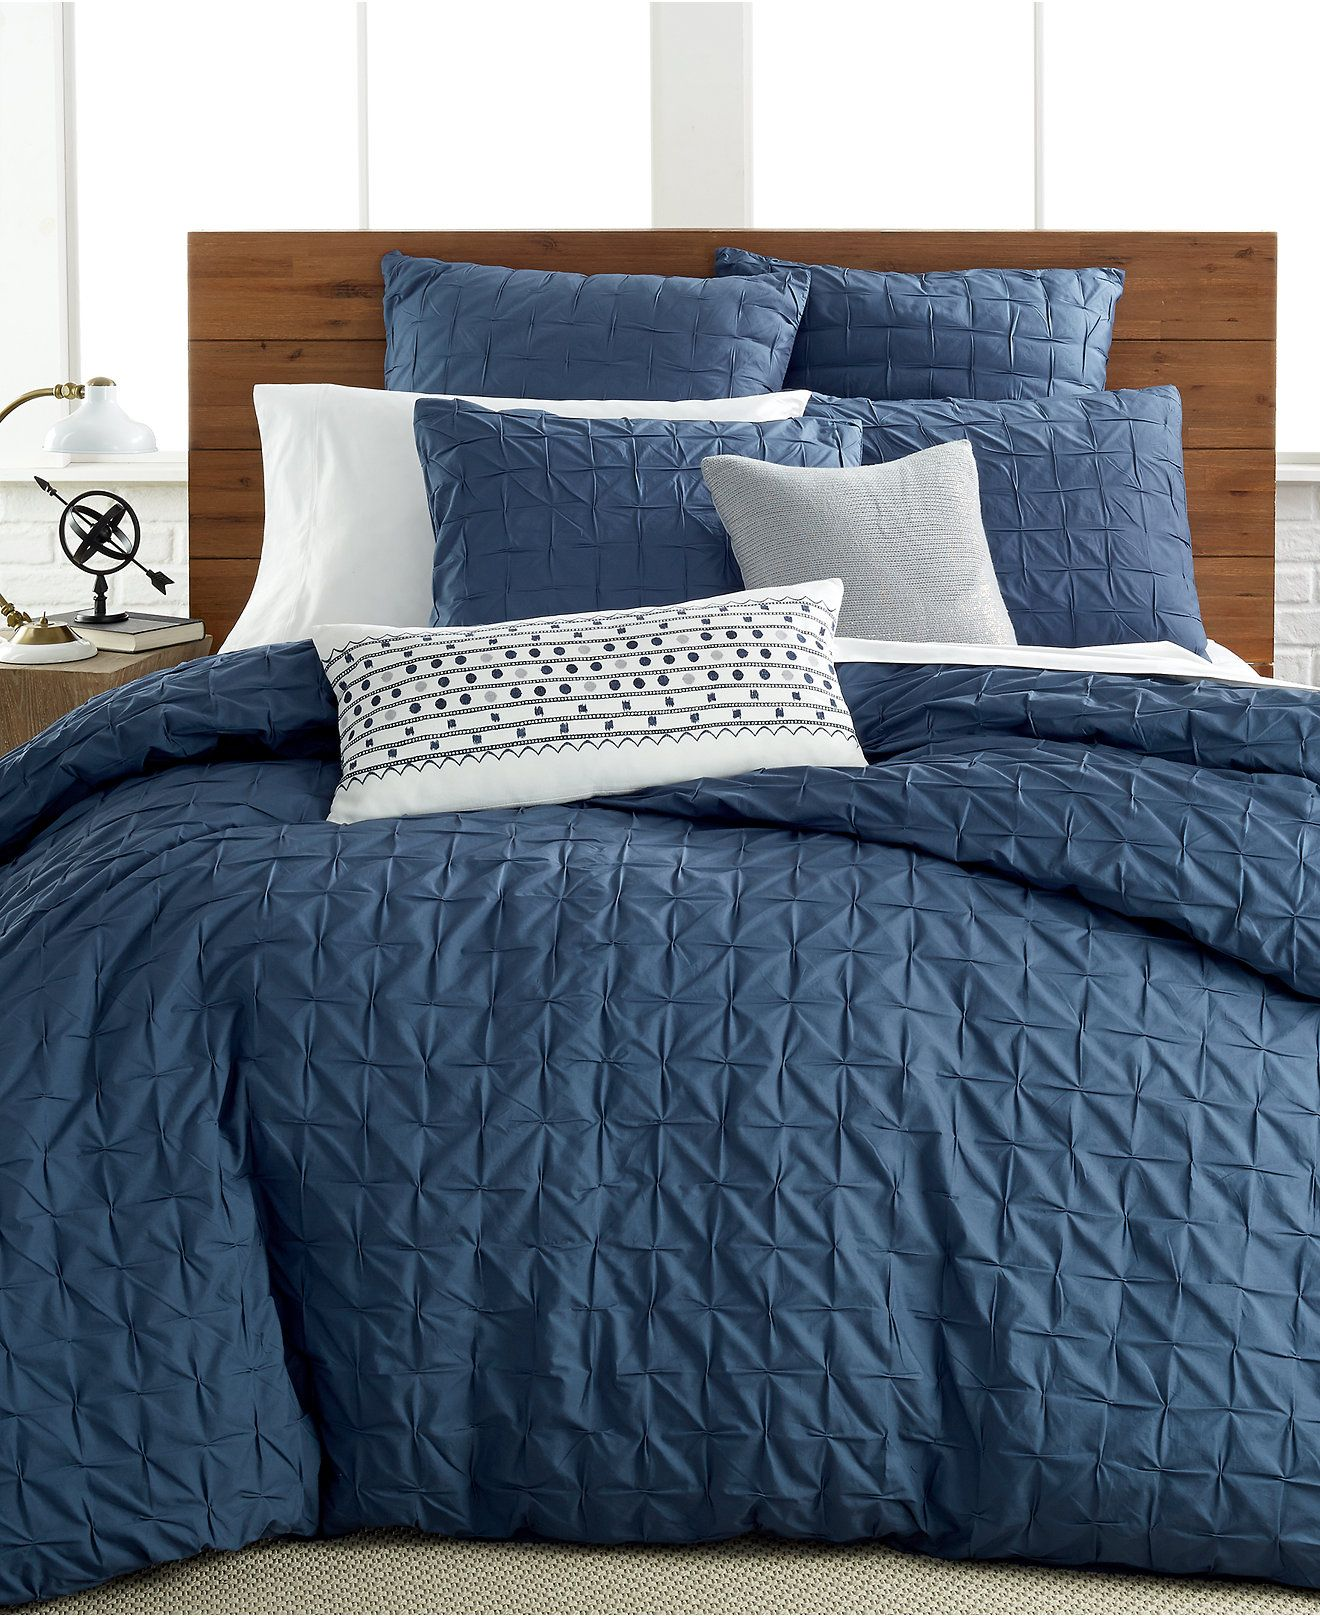 Good Indigo Bed Linen Part - 14: Bar III Box Pleat Indigo Bedding Collection - Bedding Collections - Bed U0026  Bath - Macyu0027s